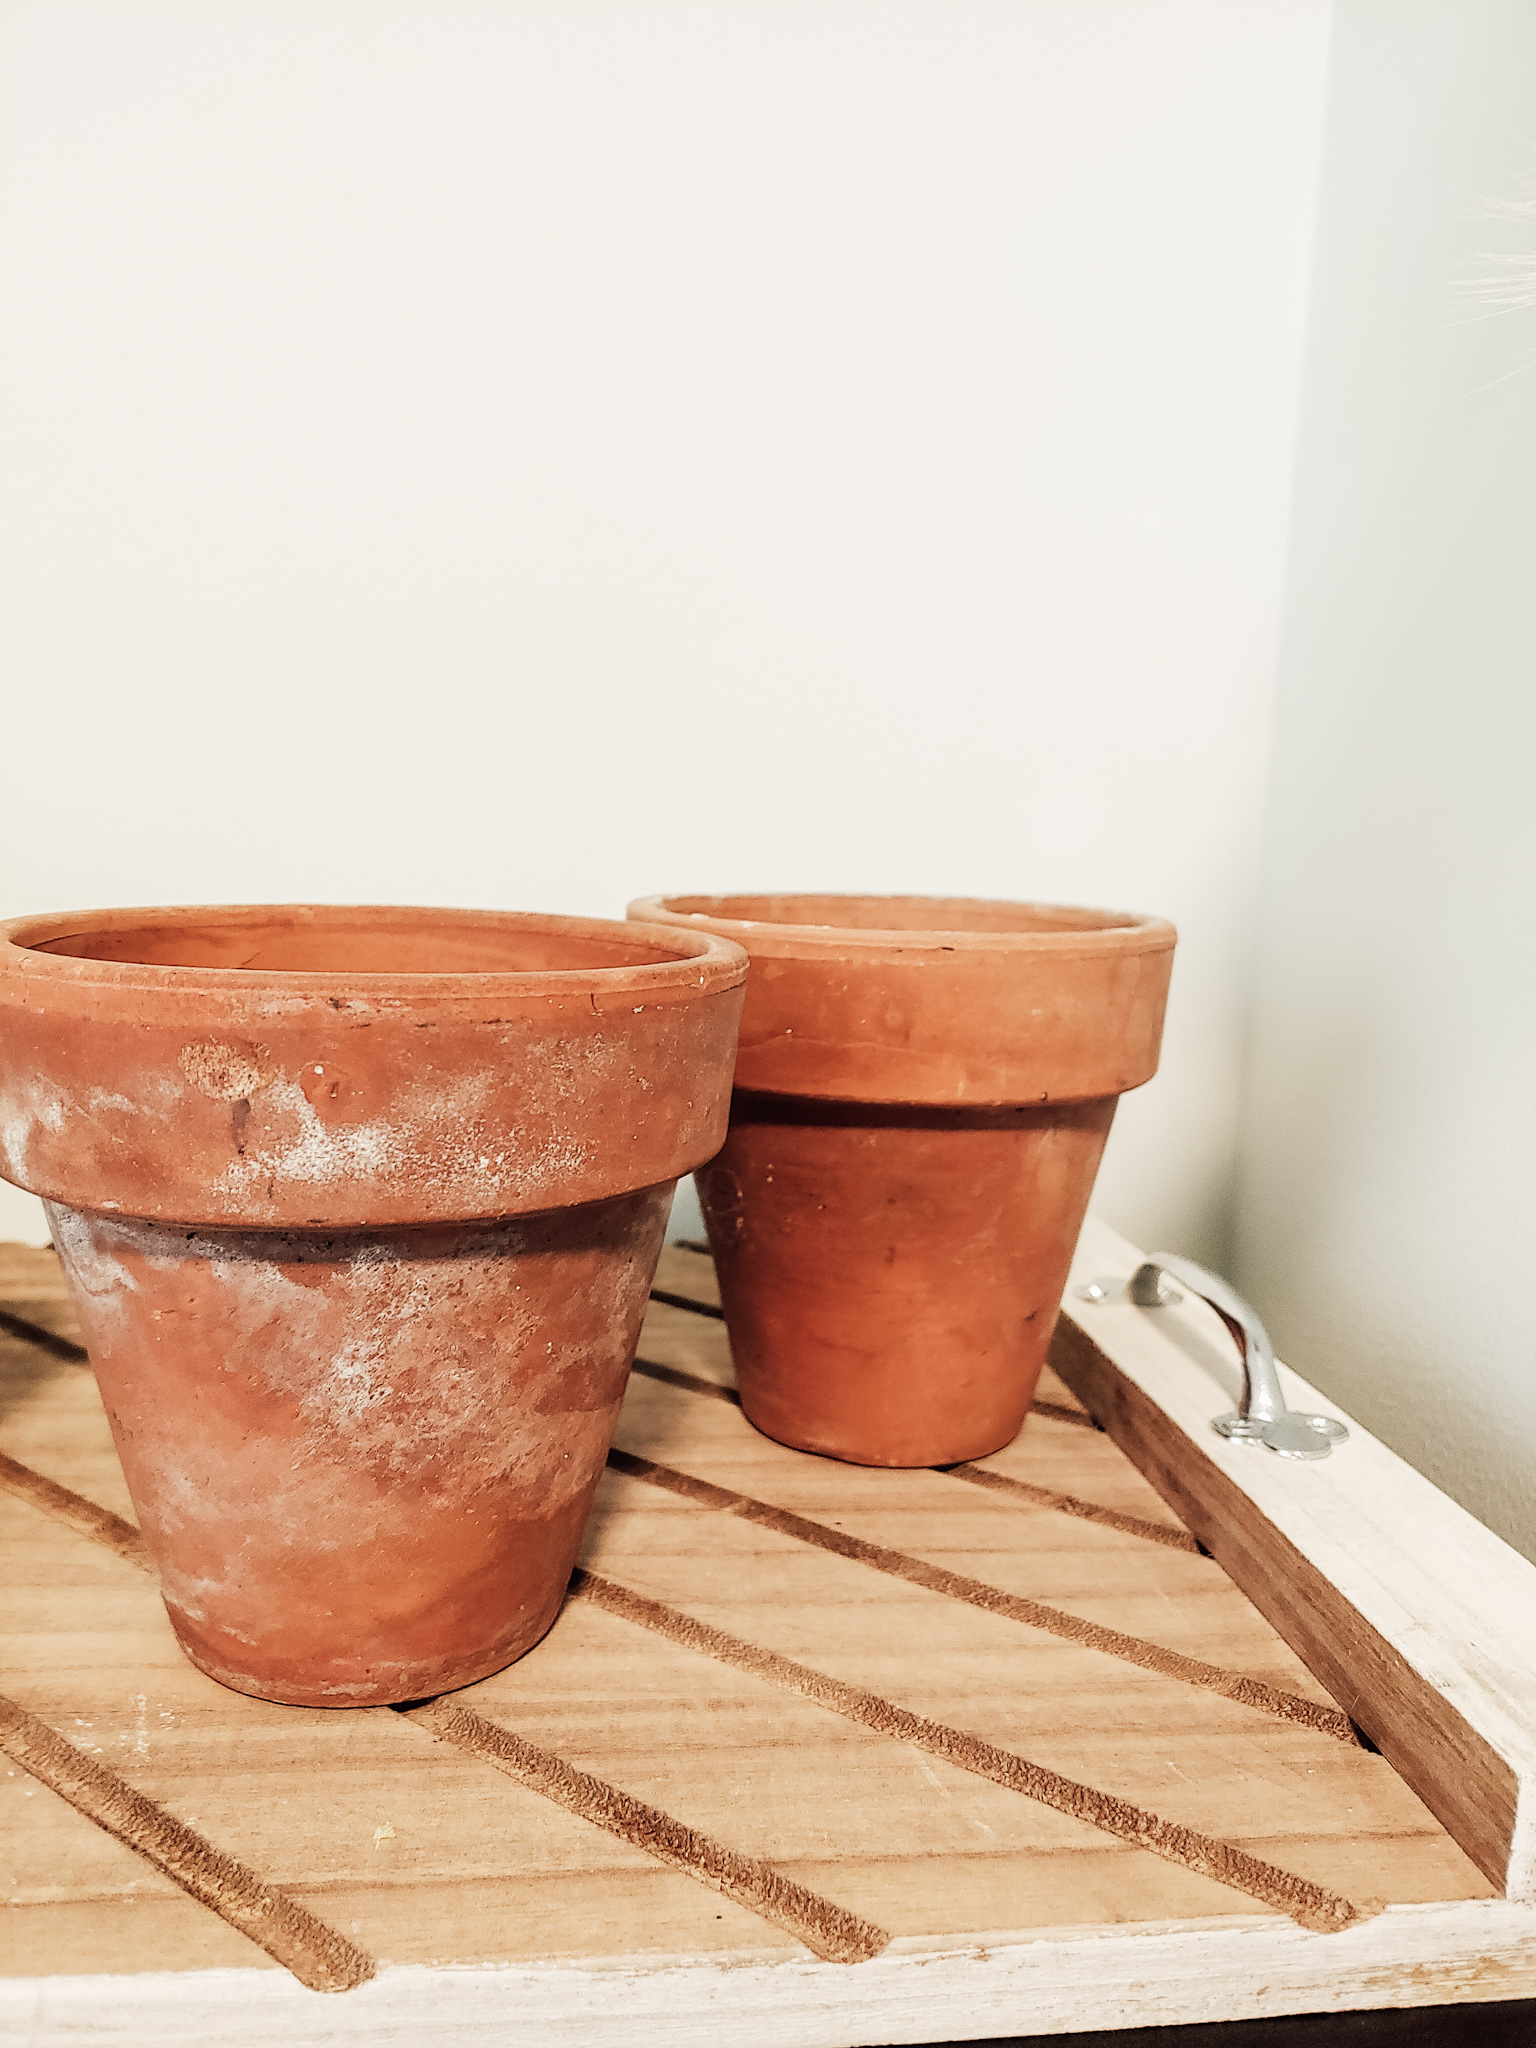 I found these vintage terra cotta pots to mix in with the new ones I have recently picked up